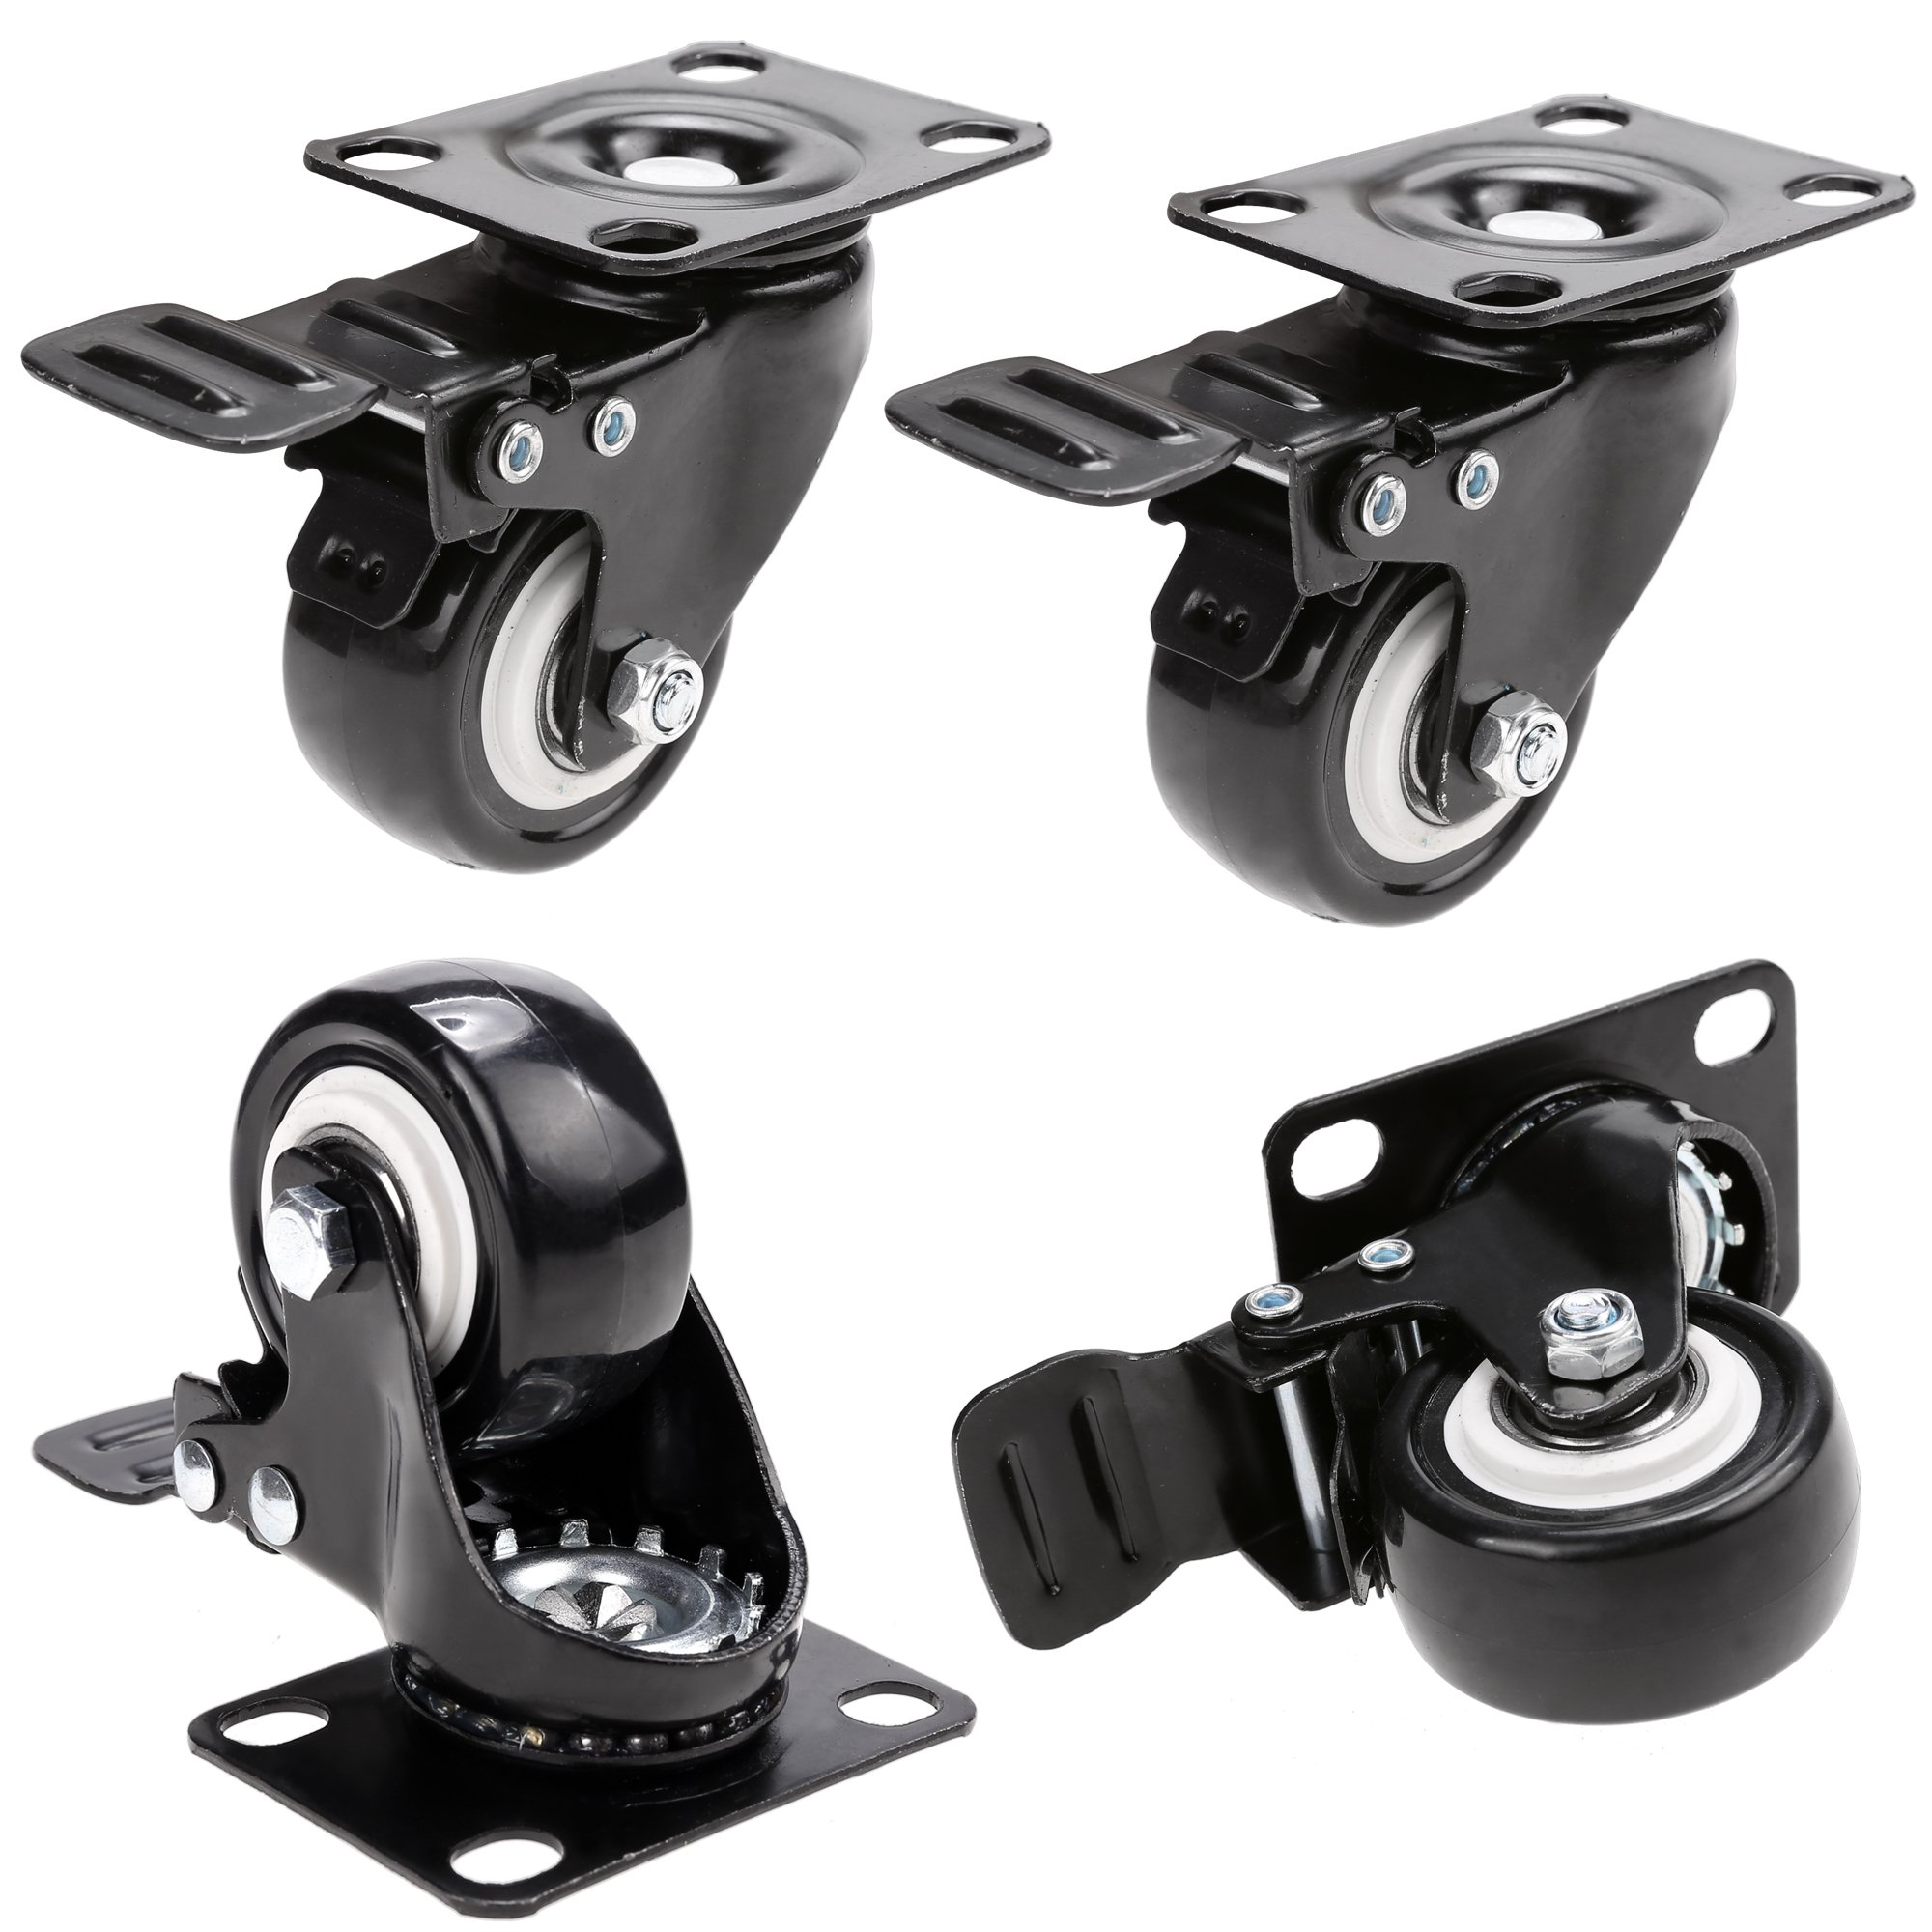 2'' Coocheer Swivel Caster Wheels Rubber Base with Top Plate & Bearing Heavy Duty Pack of 4 (new)